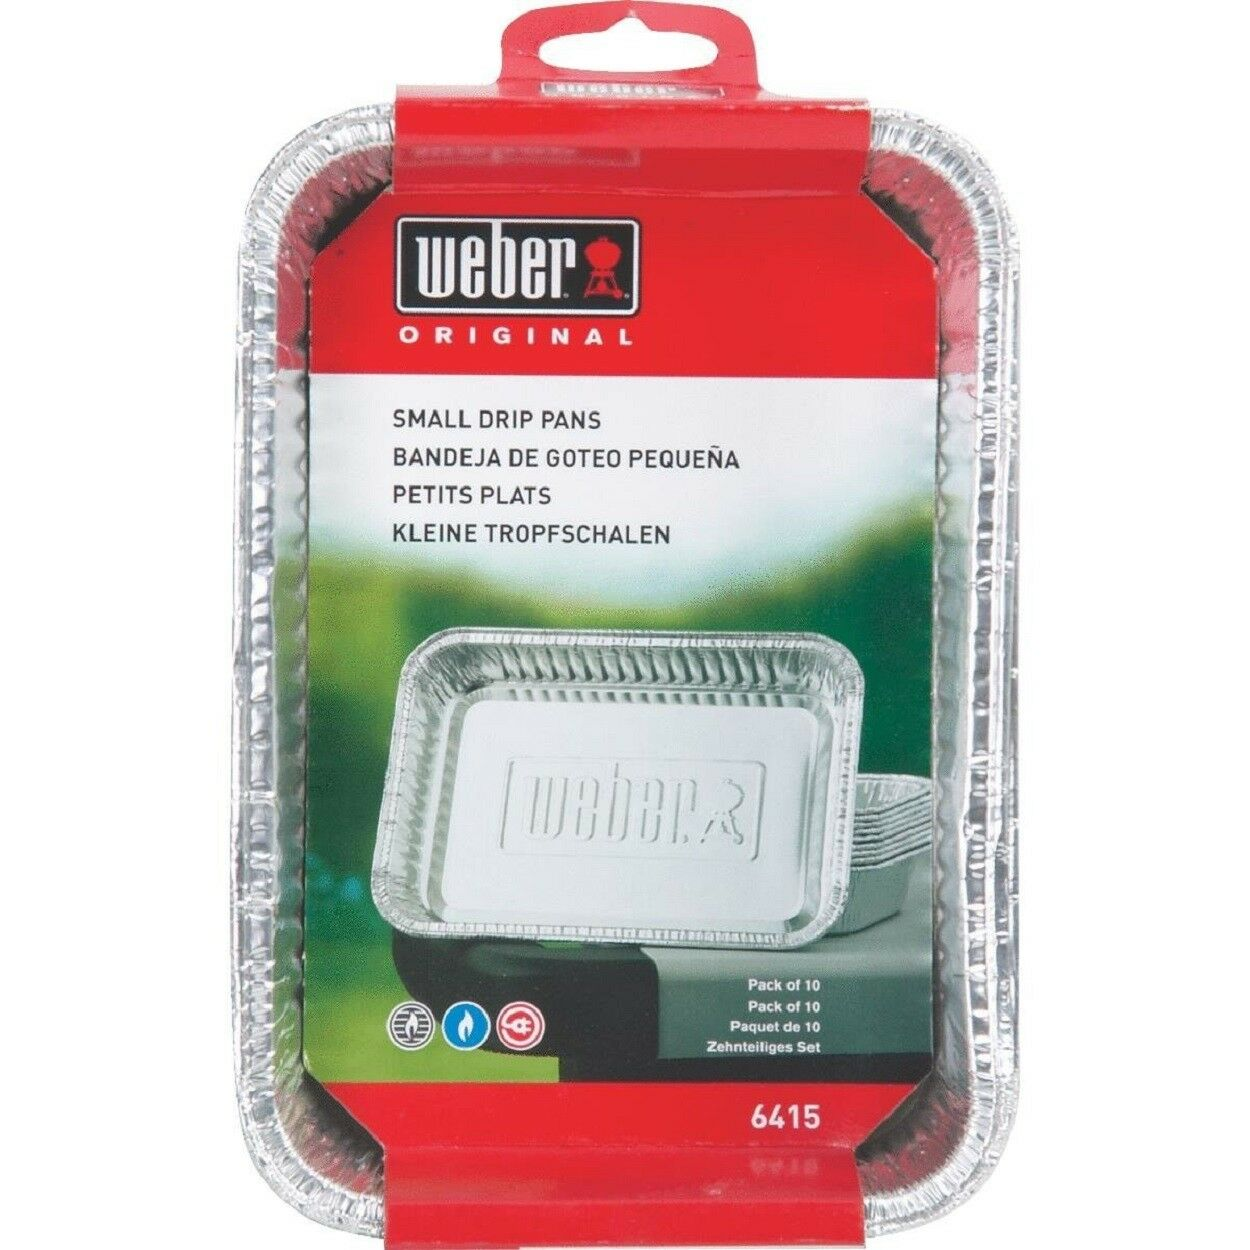 Weber Small Drip Pans Aluminum BBQ Grill Grease Catch  7.5 x